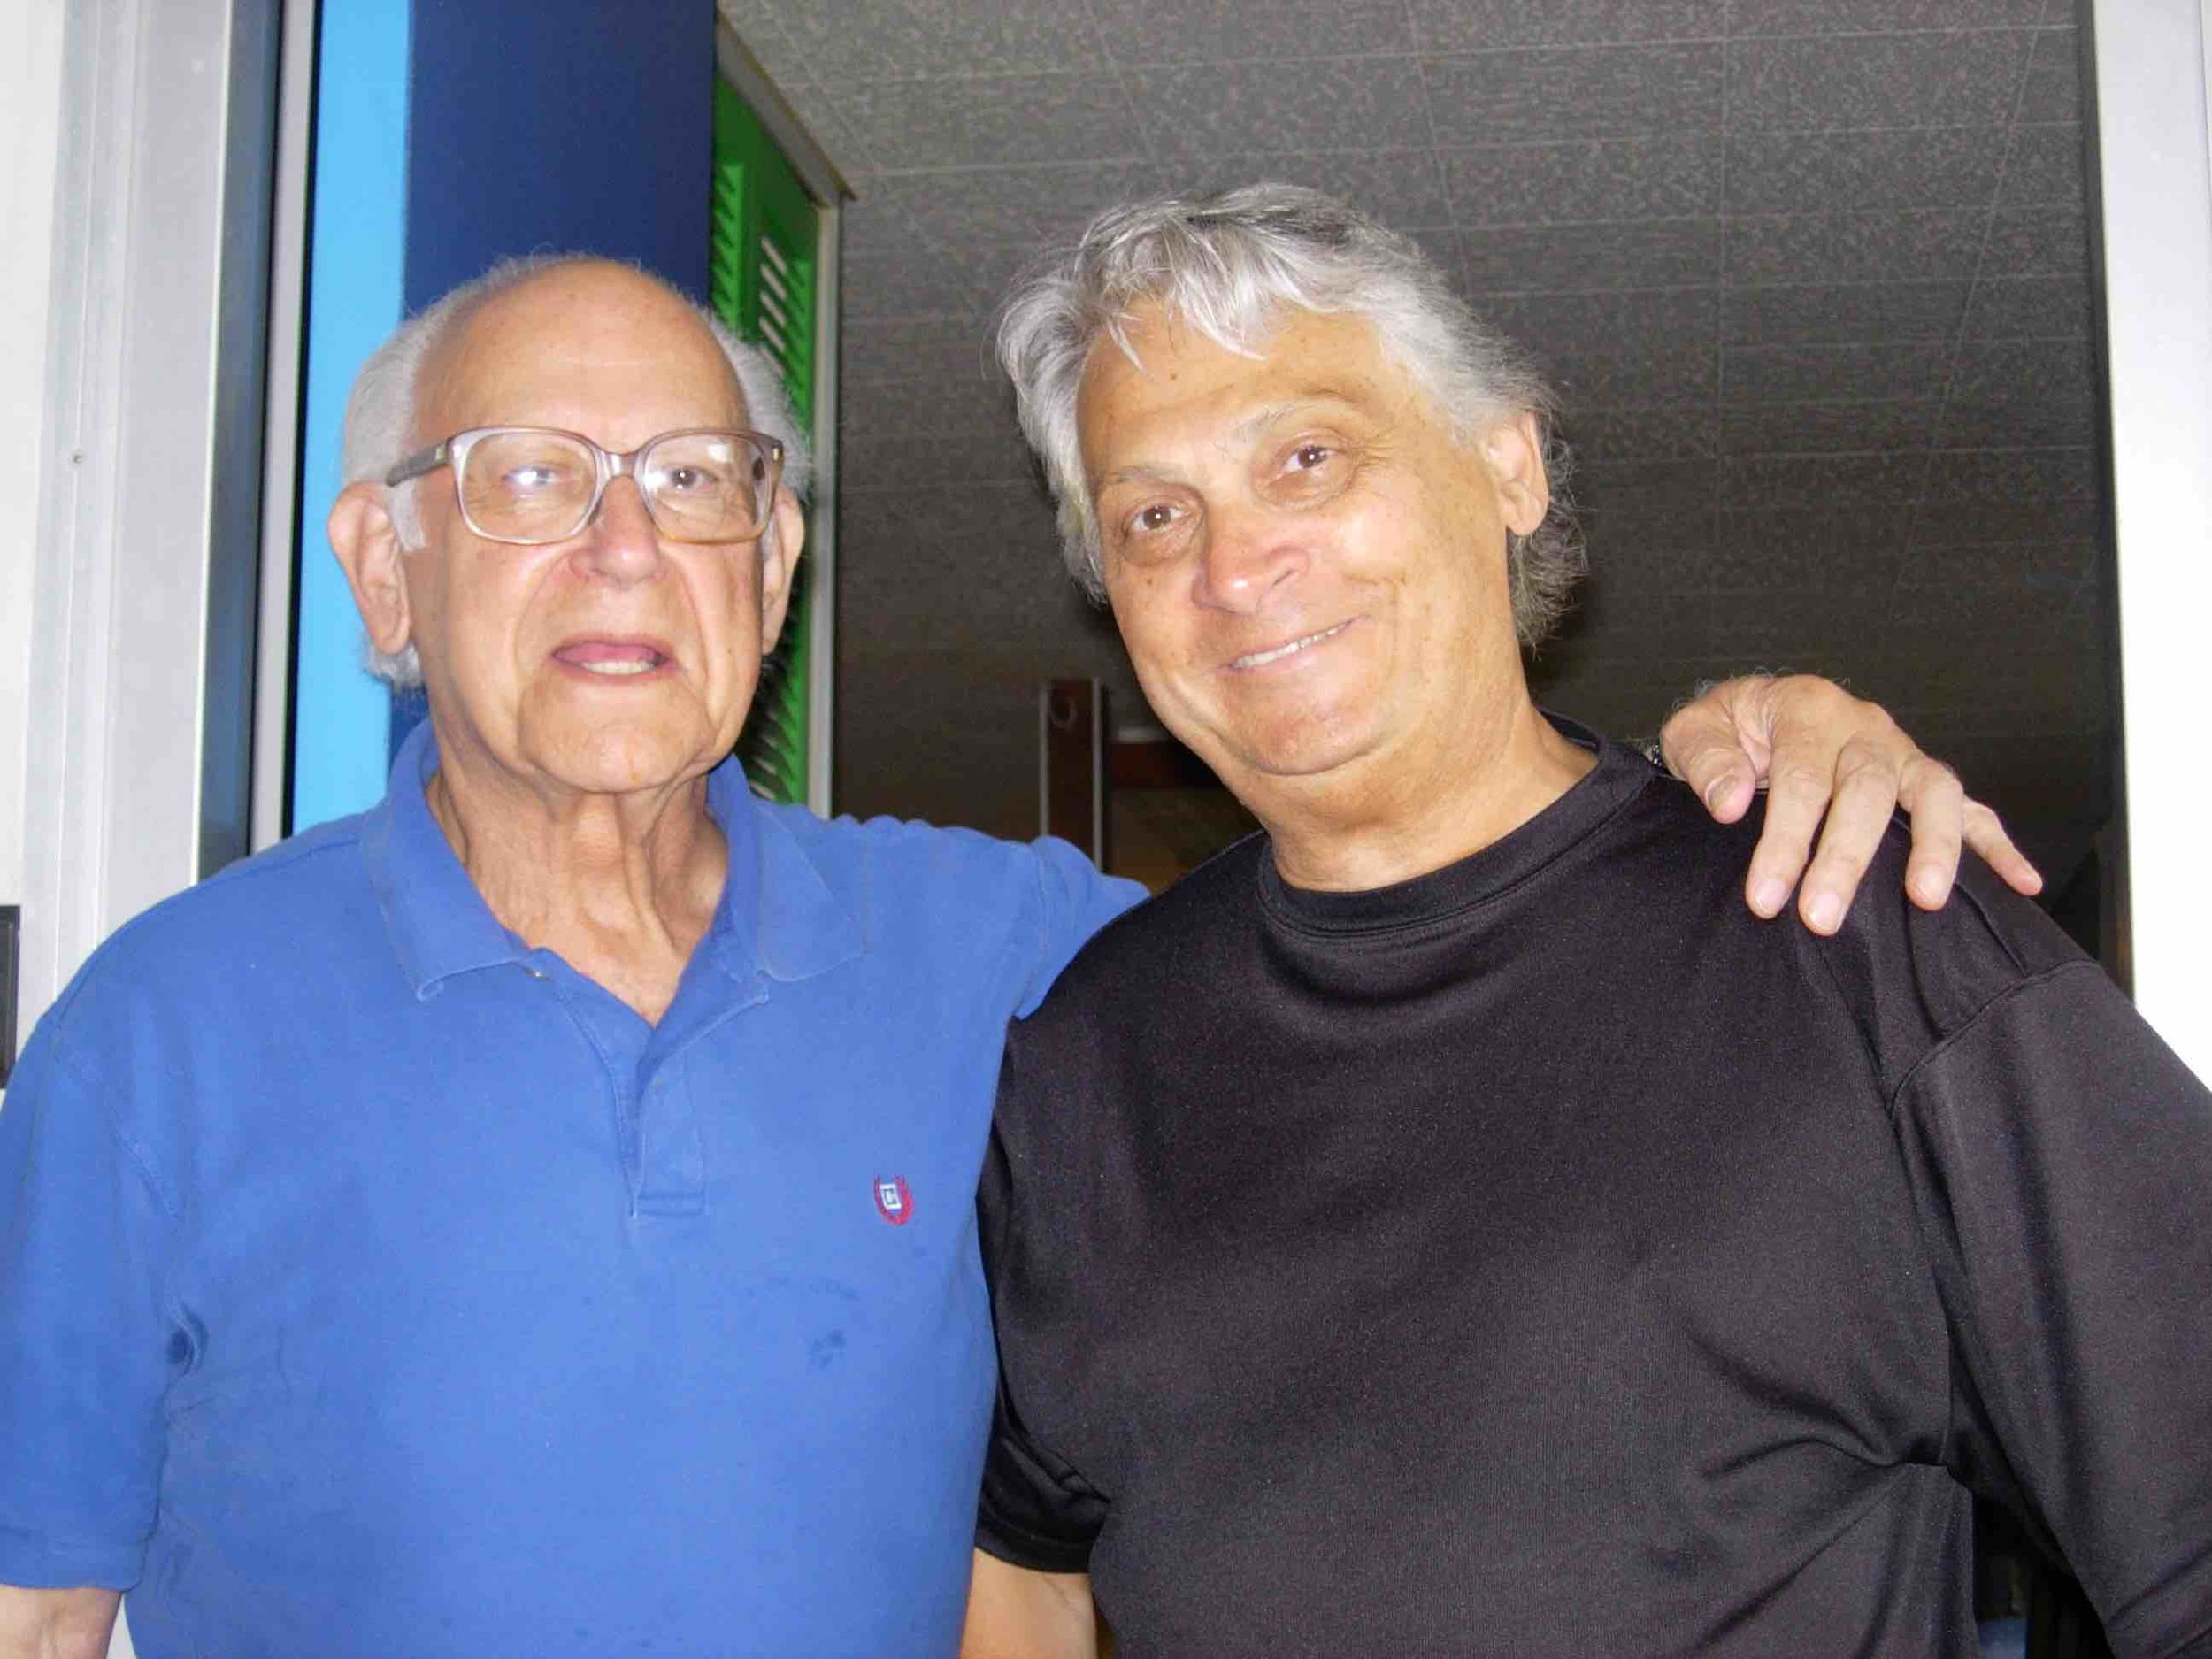 Composer Richard Hoffman and conductor/writer John Knight in Oberlin, Ohio